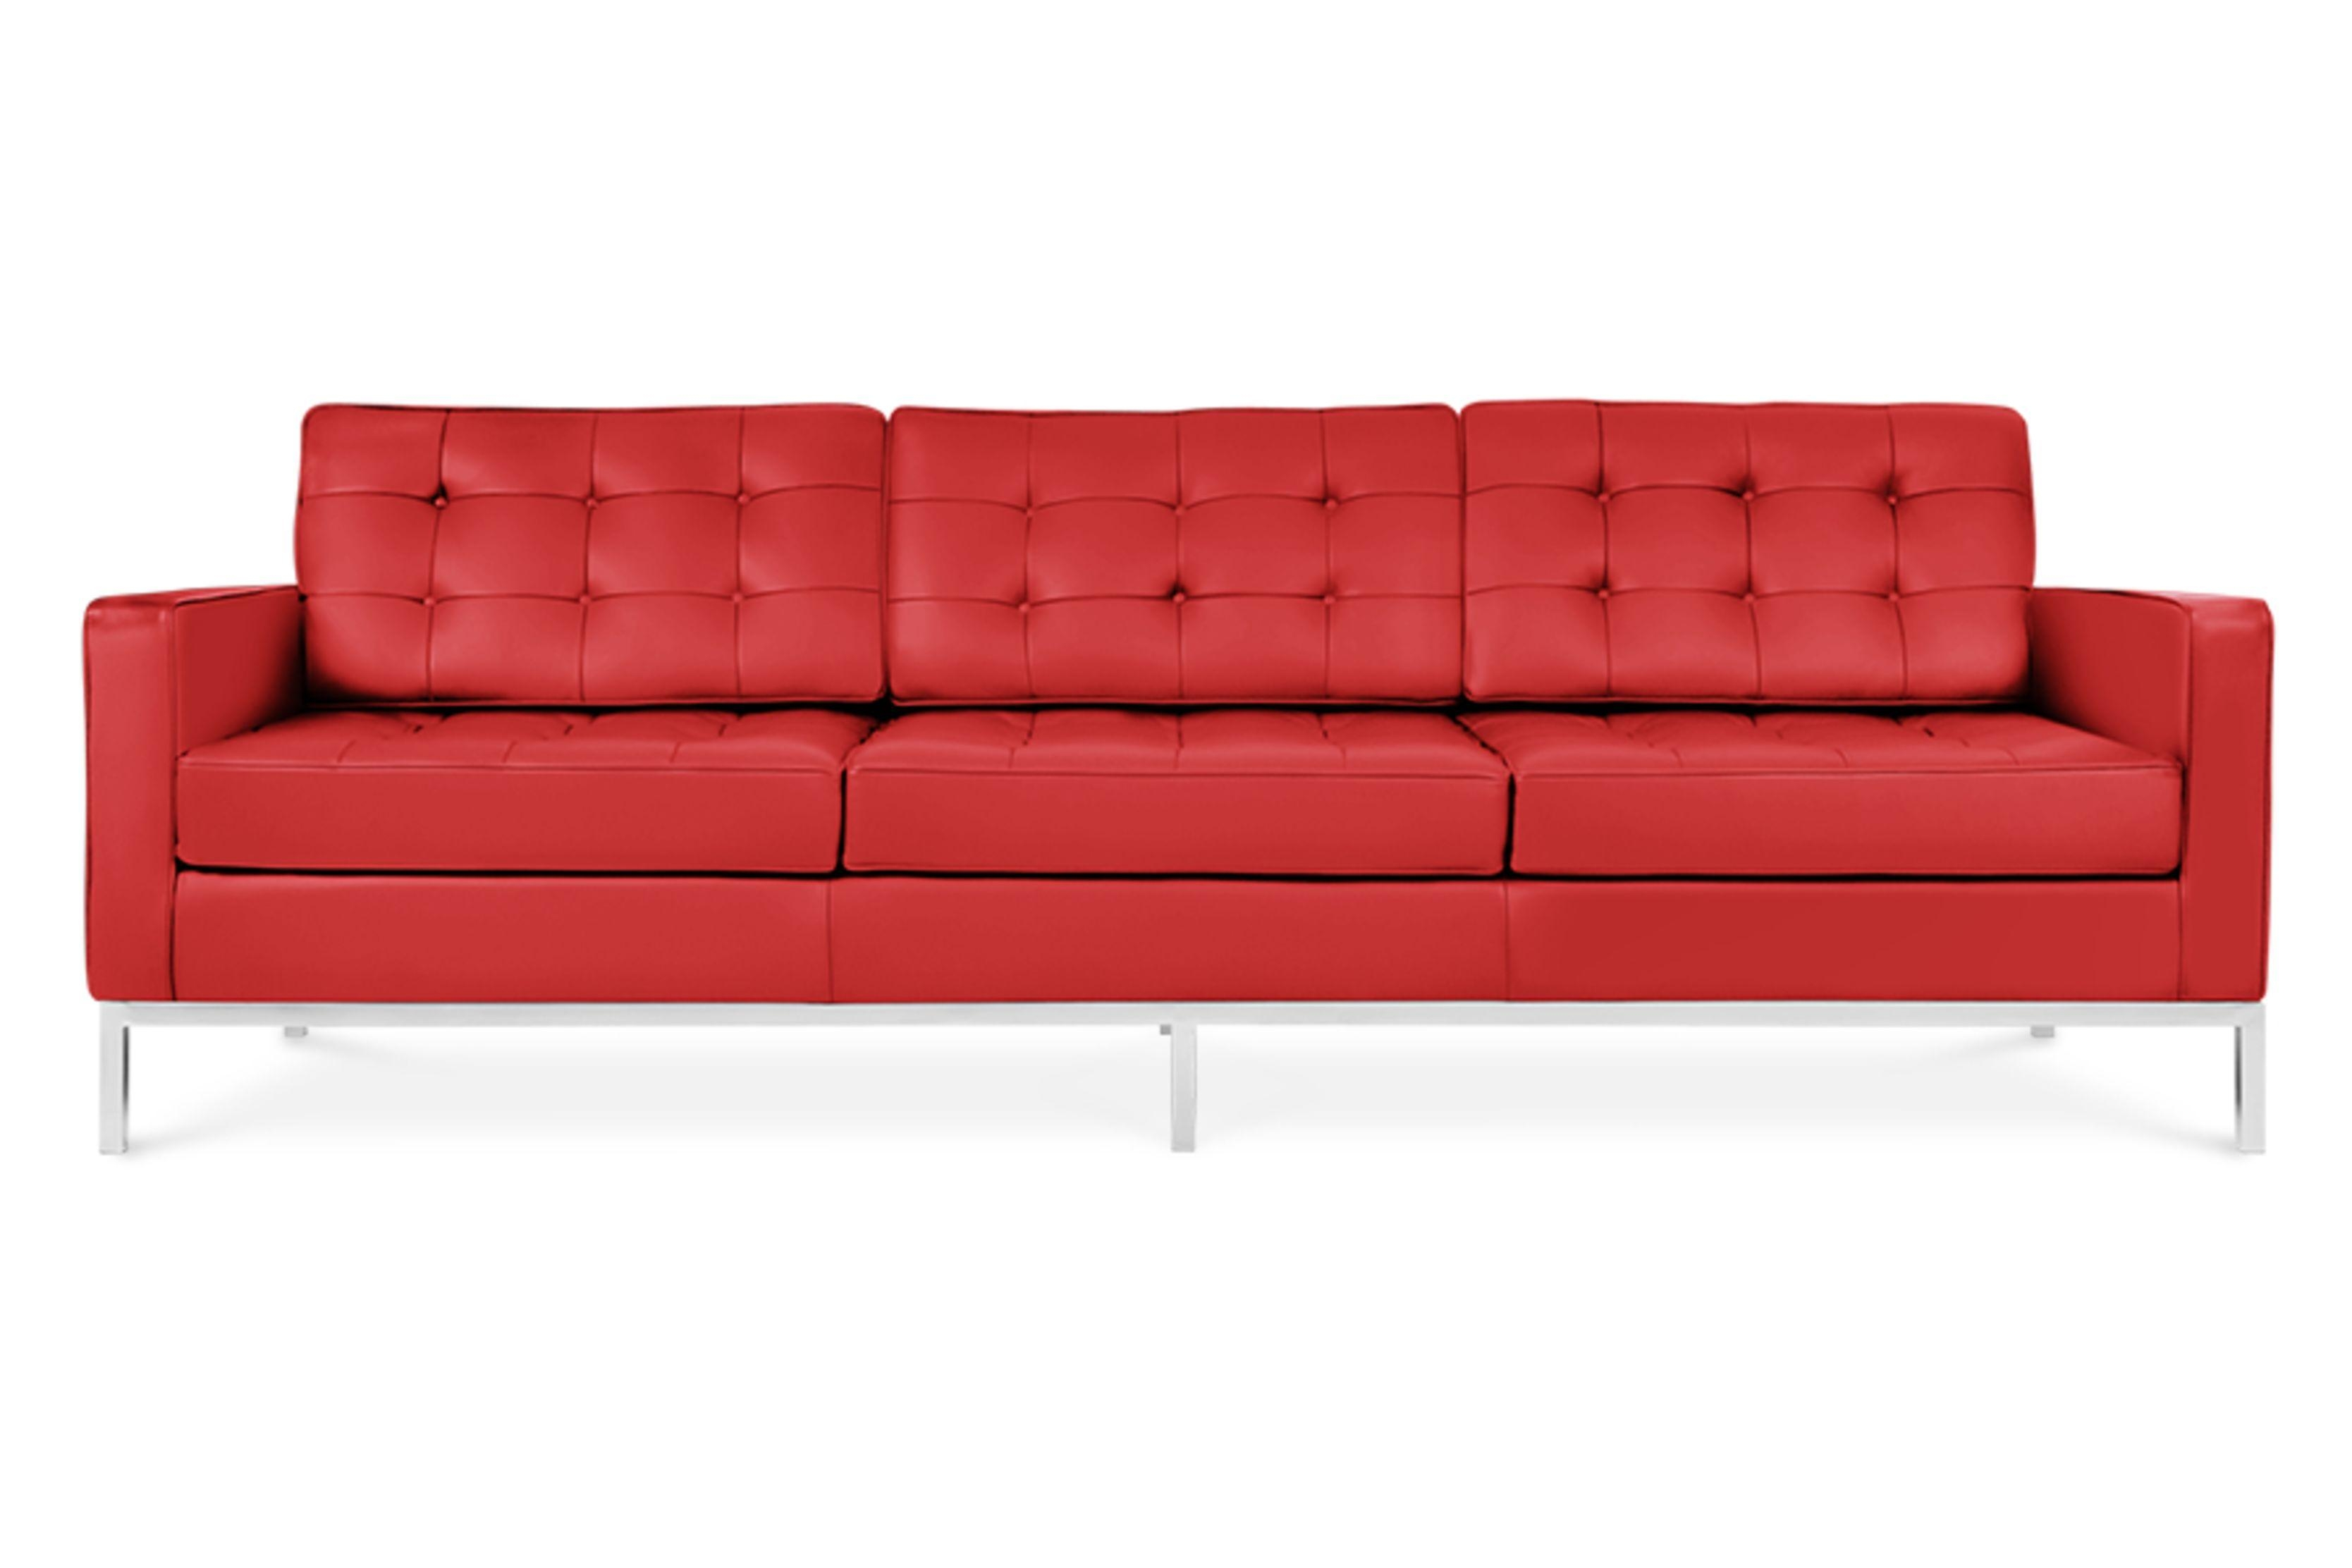 Cloud Sectional Sofa With Design Inspiration 38094 | Kengire Throughout Cloud Sectional Sofas (Image 8 of 20)